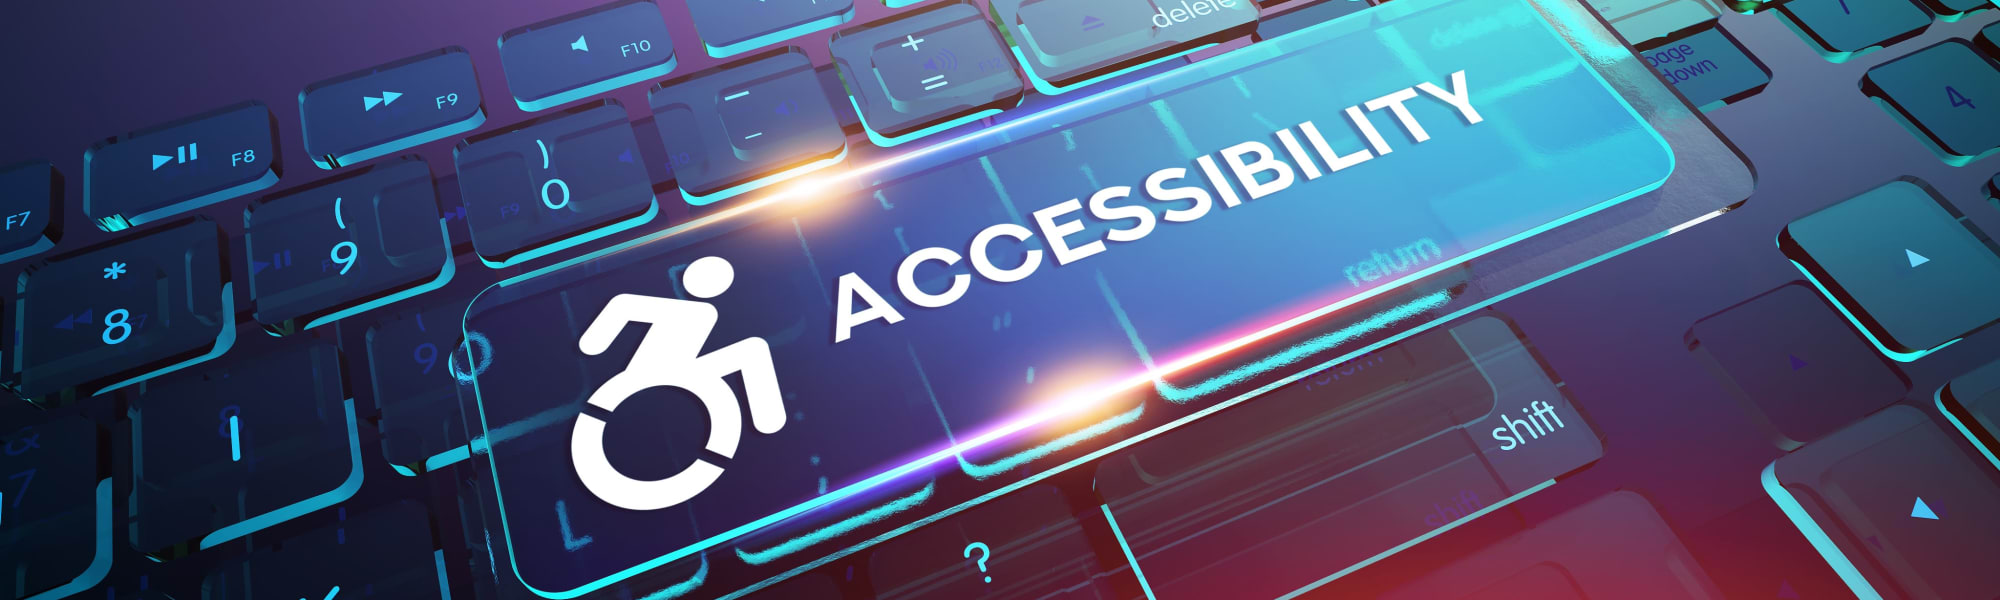 Accessibility policy for Olympus Property in Fort Worth, Texas